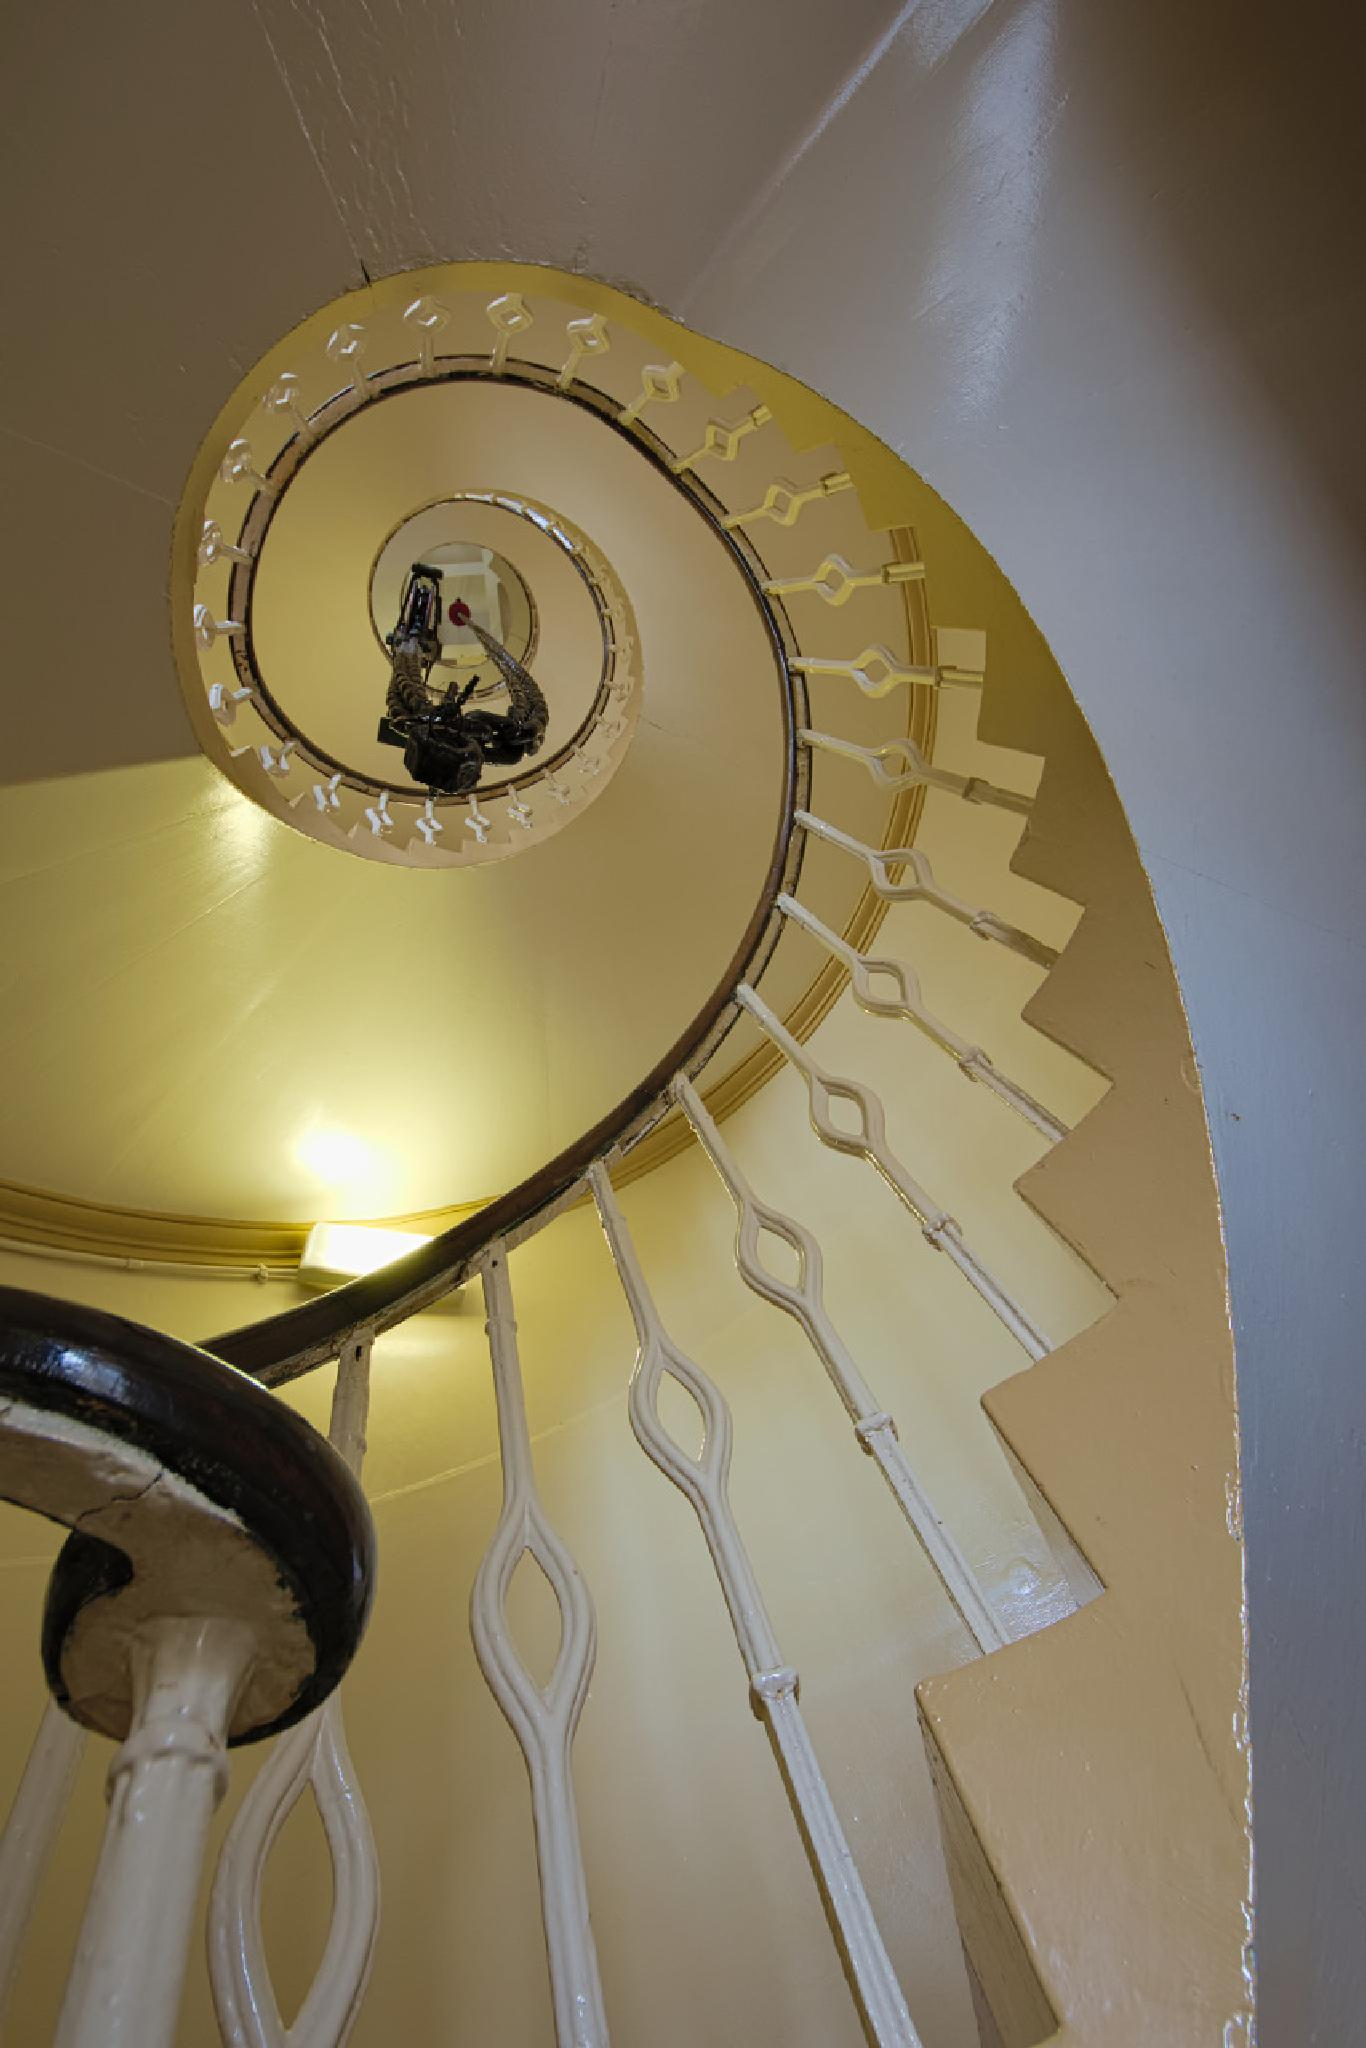 Spiral by damianc